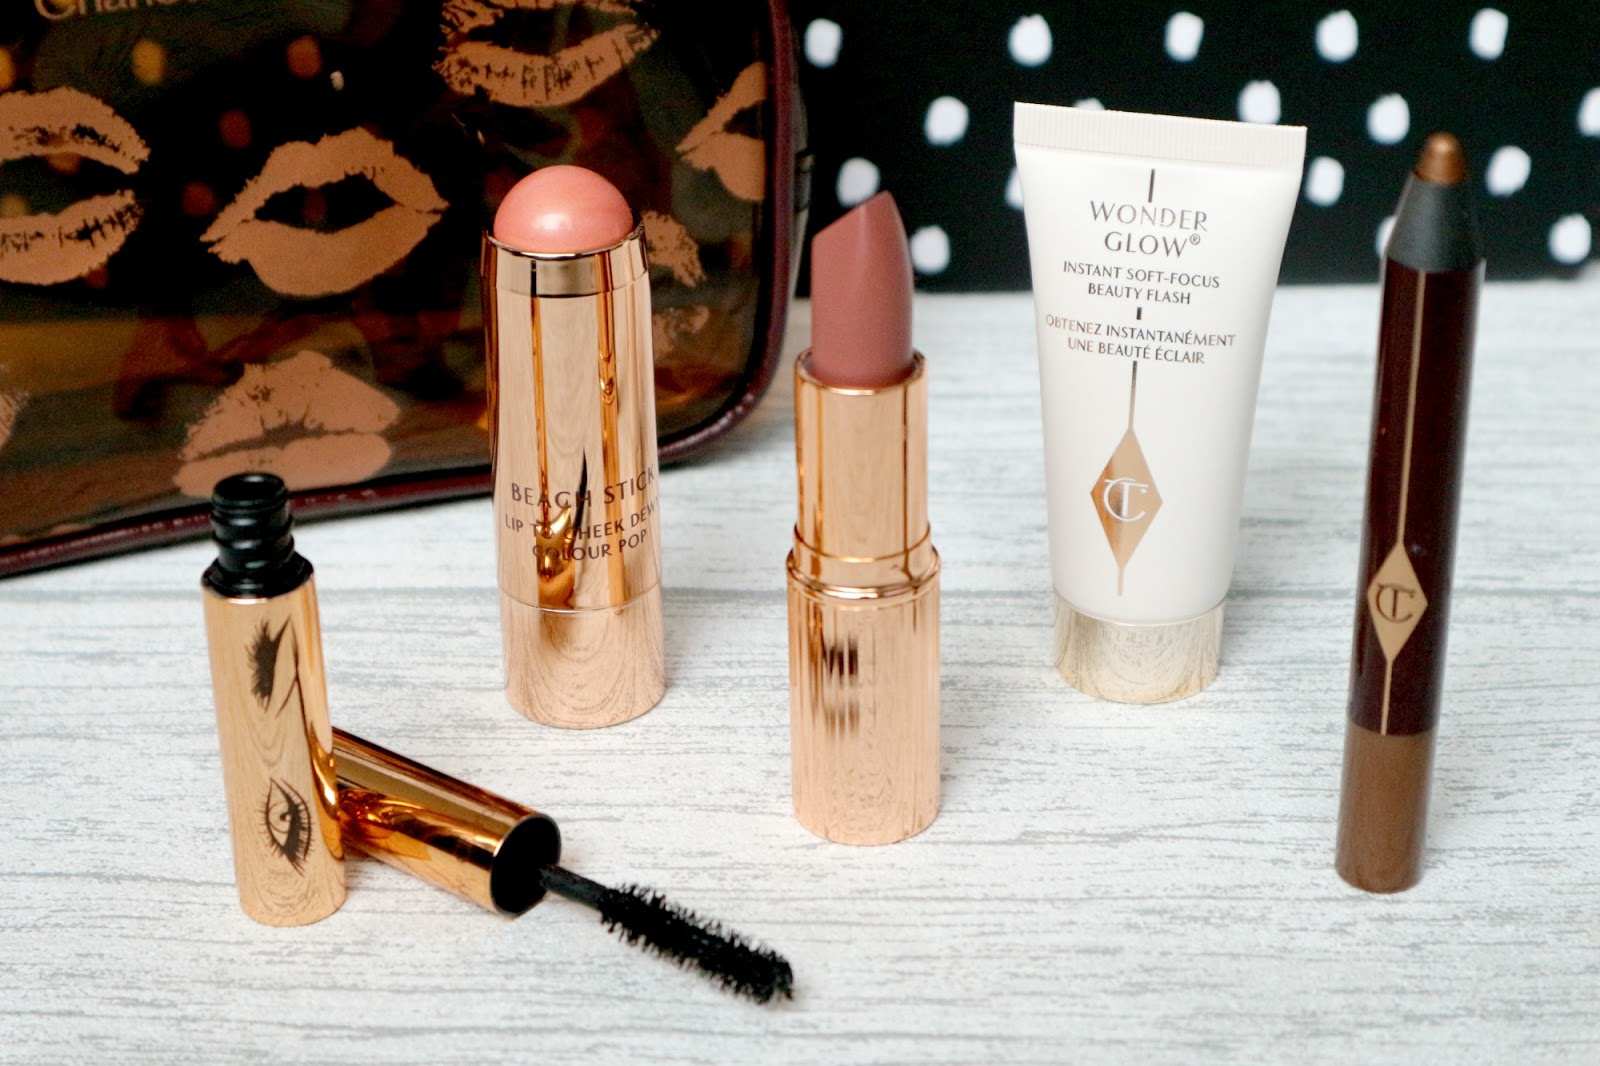 Charlotte Tilbury Natural Glowing Look Review